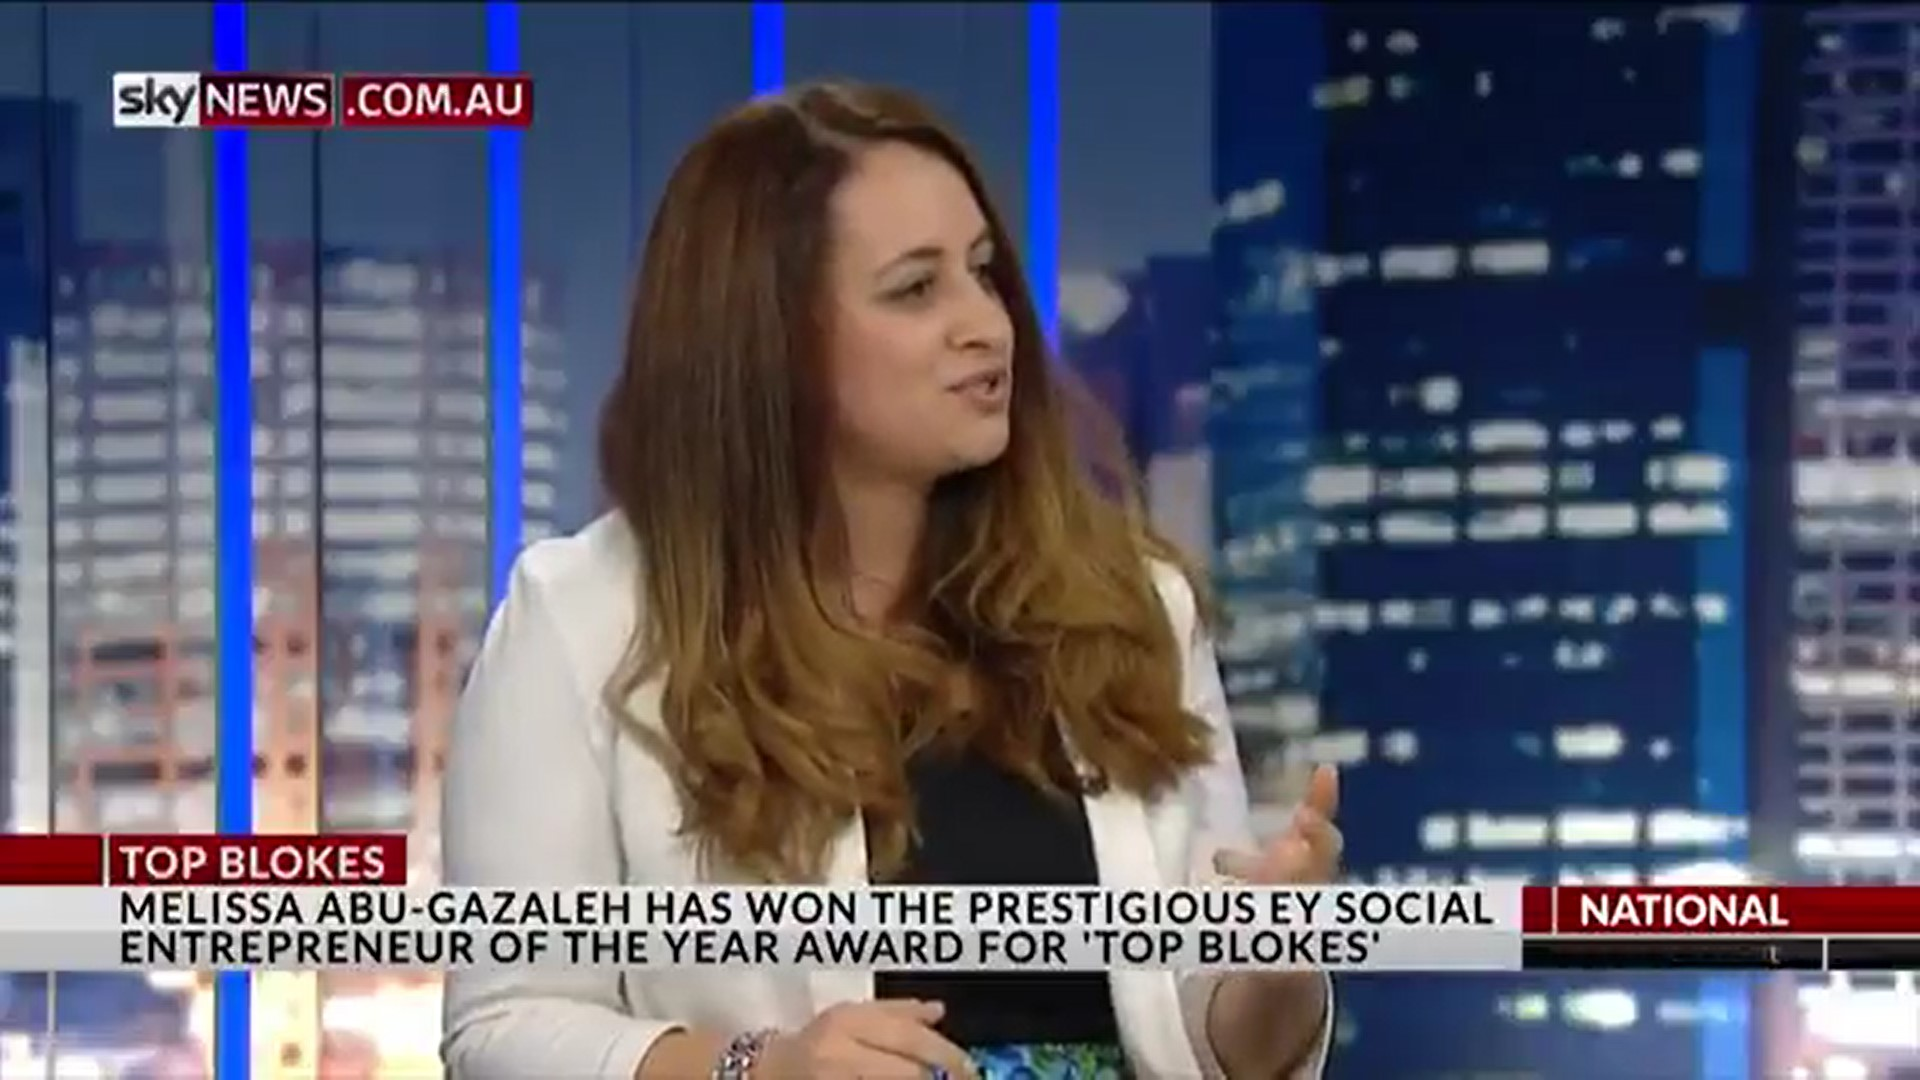 Mel on Sky News